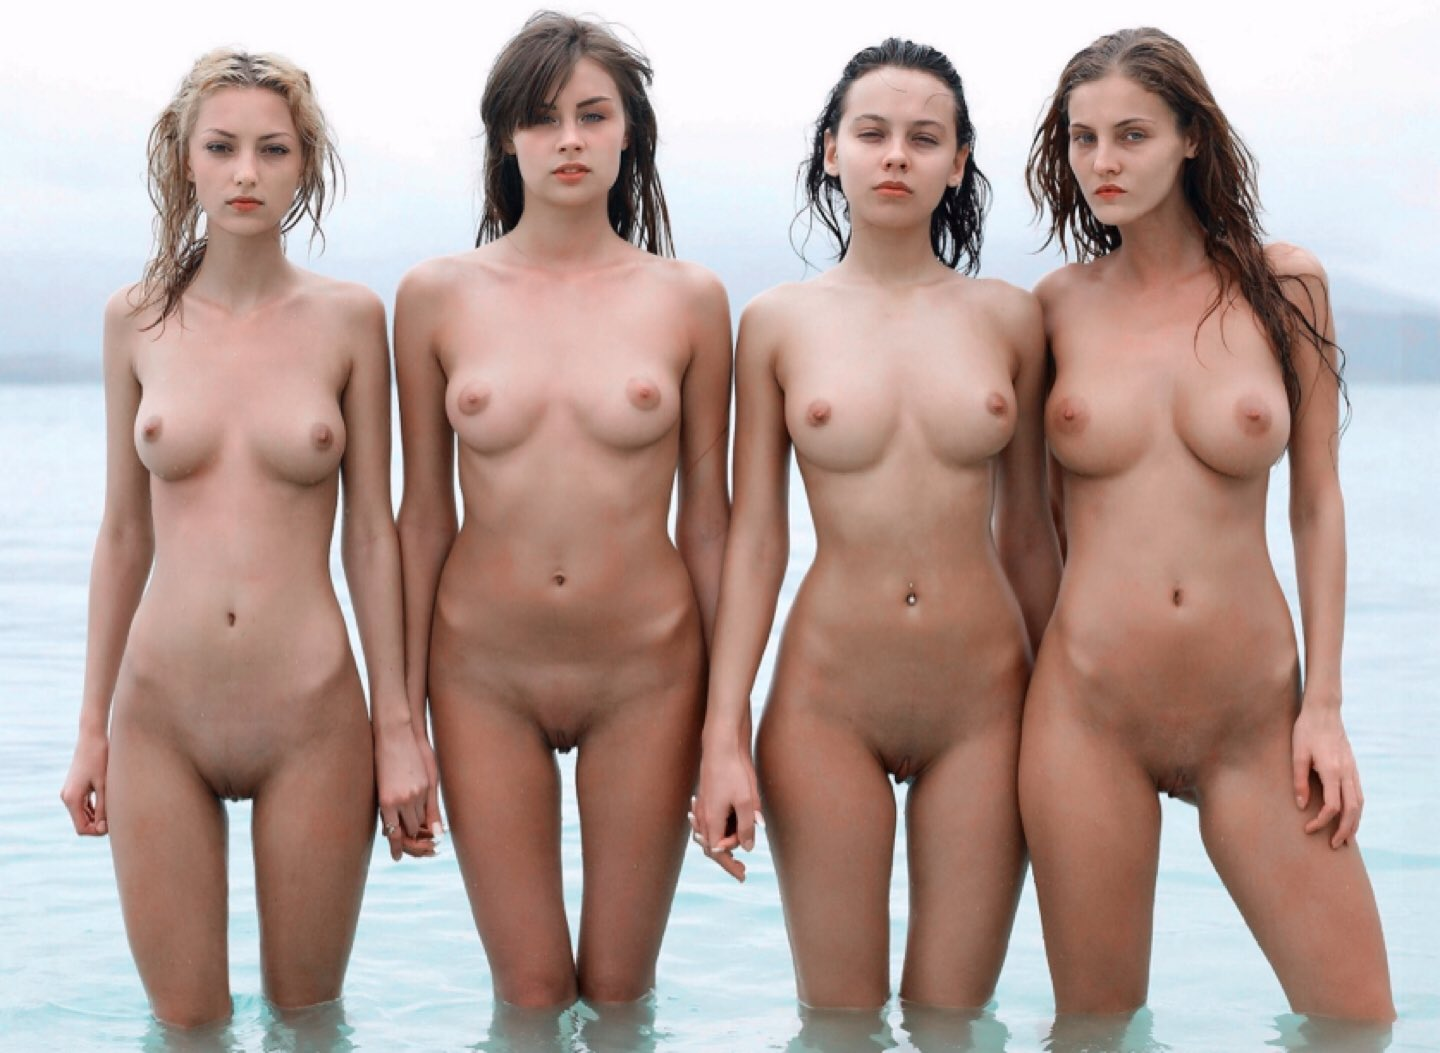 Nude tiny english babes hd photo erotica photos